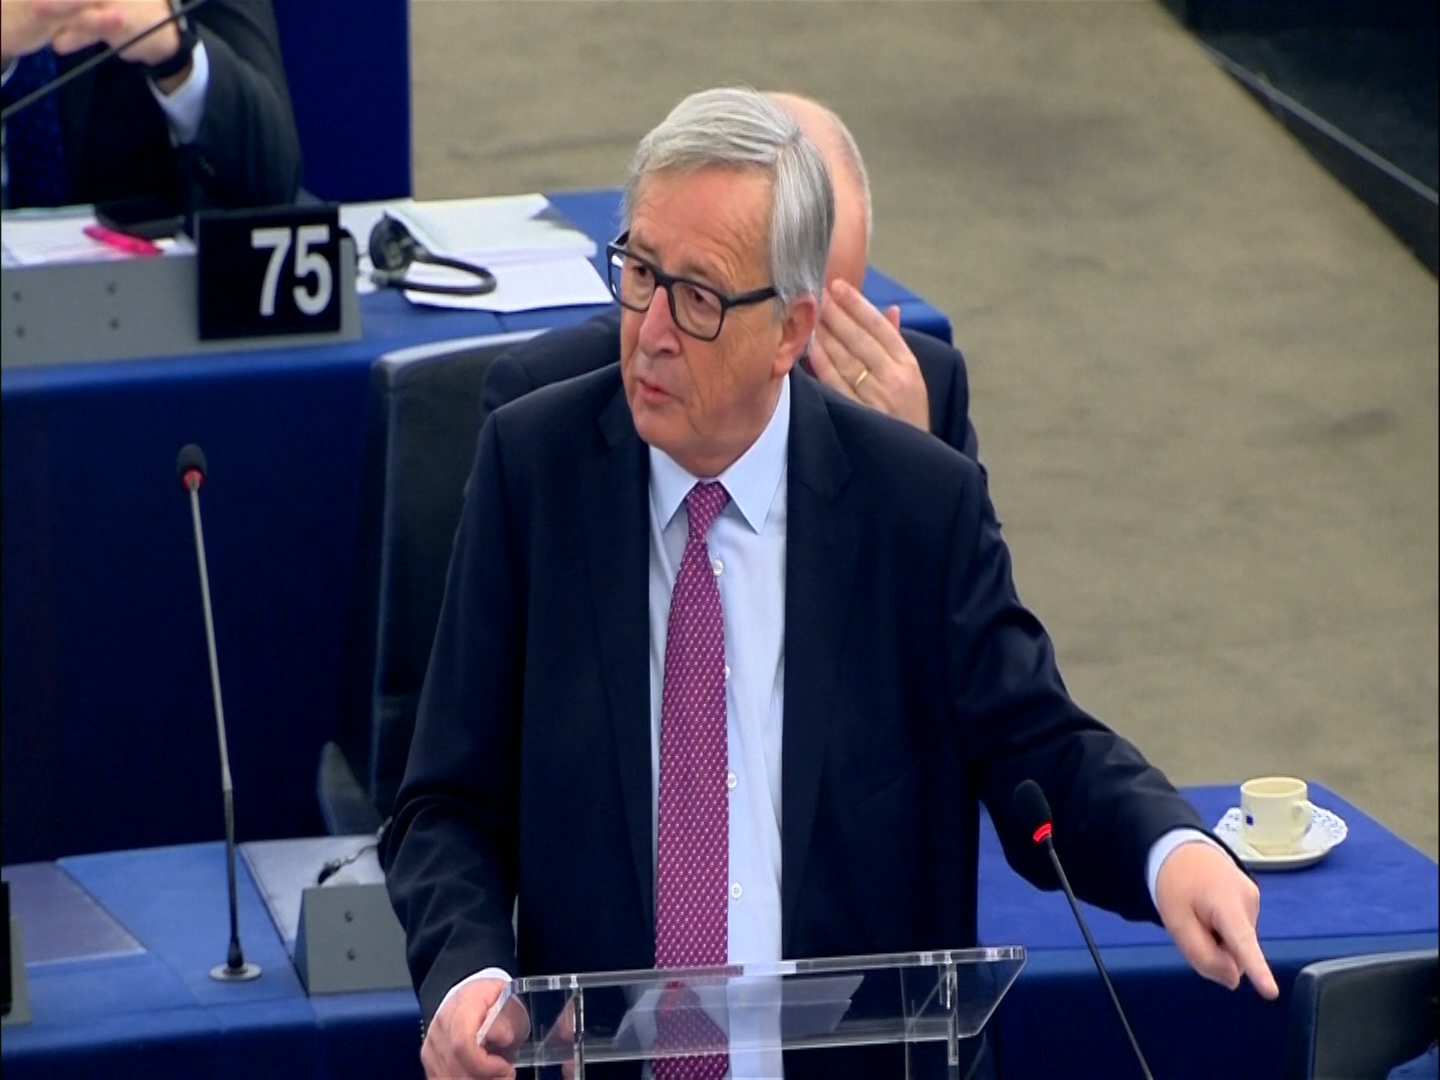 european-commission-president-says-britain-could-rejoin-eu-under-article-49